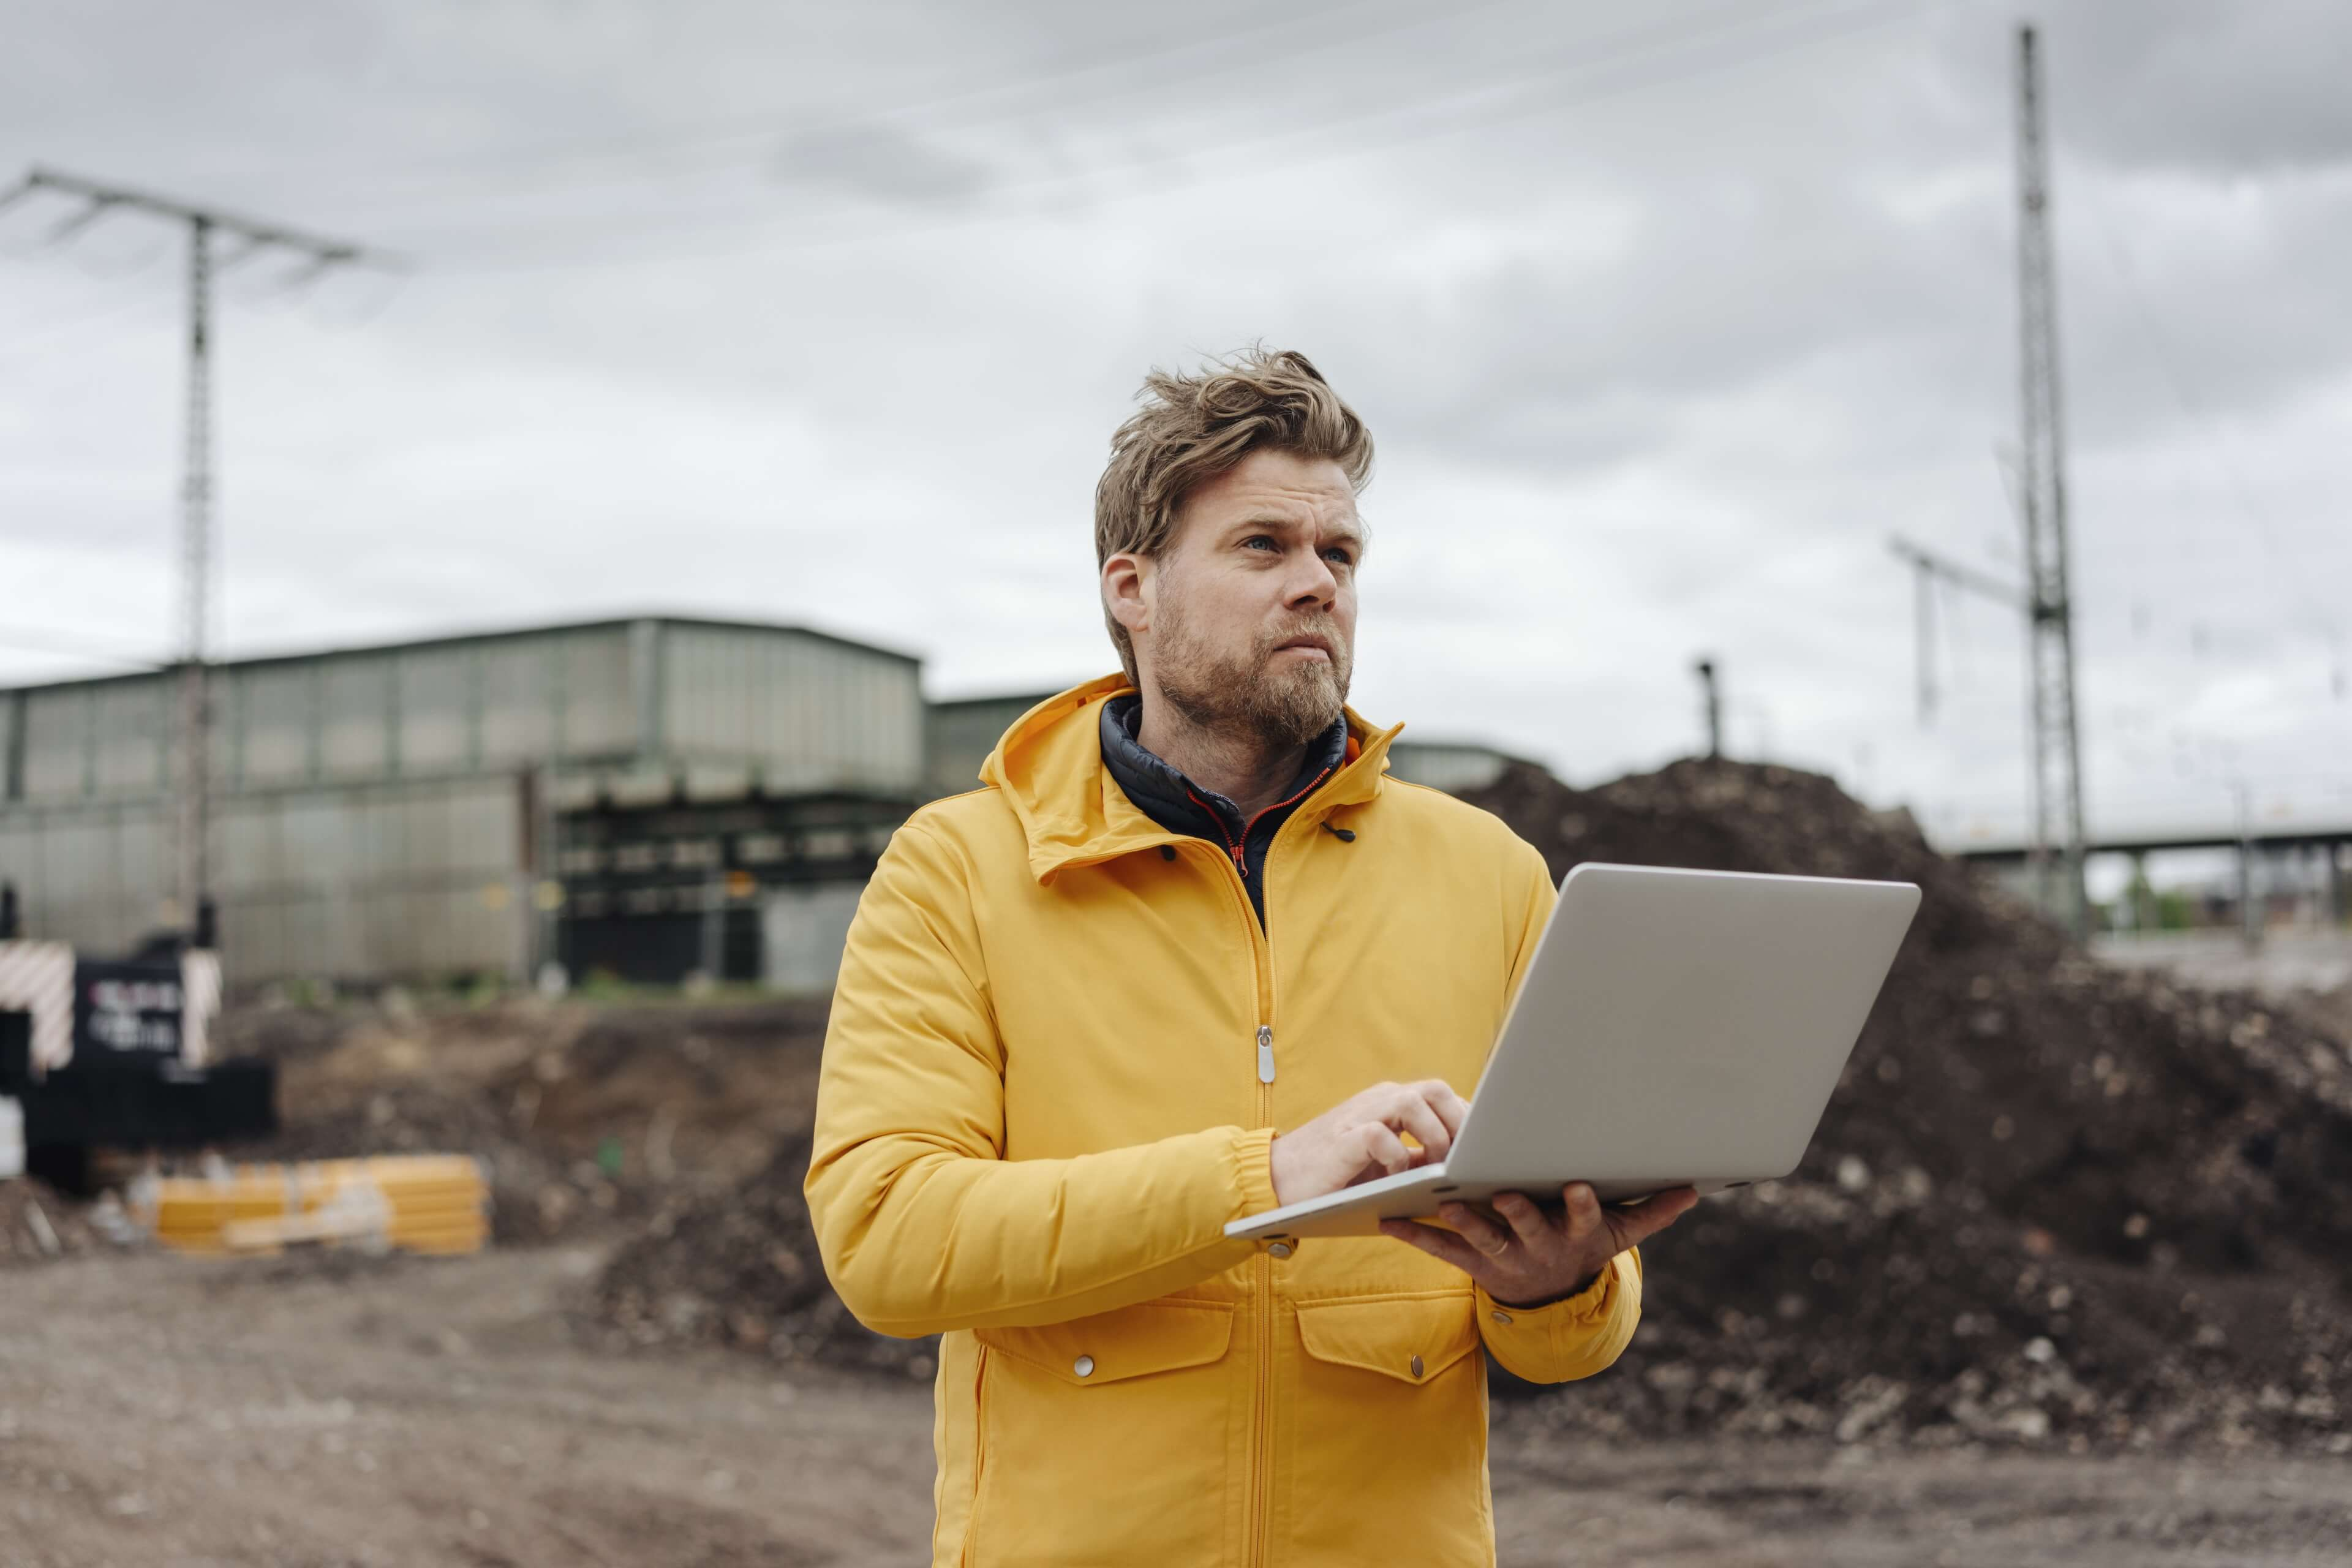 A man on site using his laptop